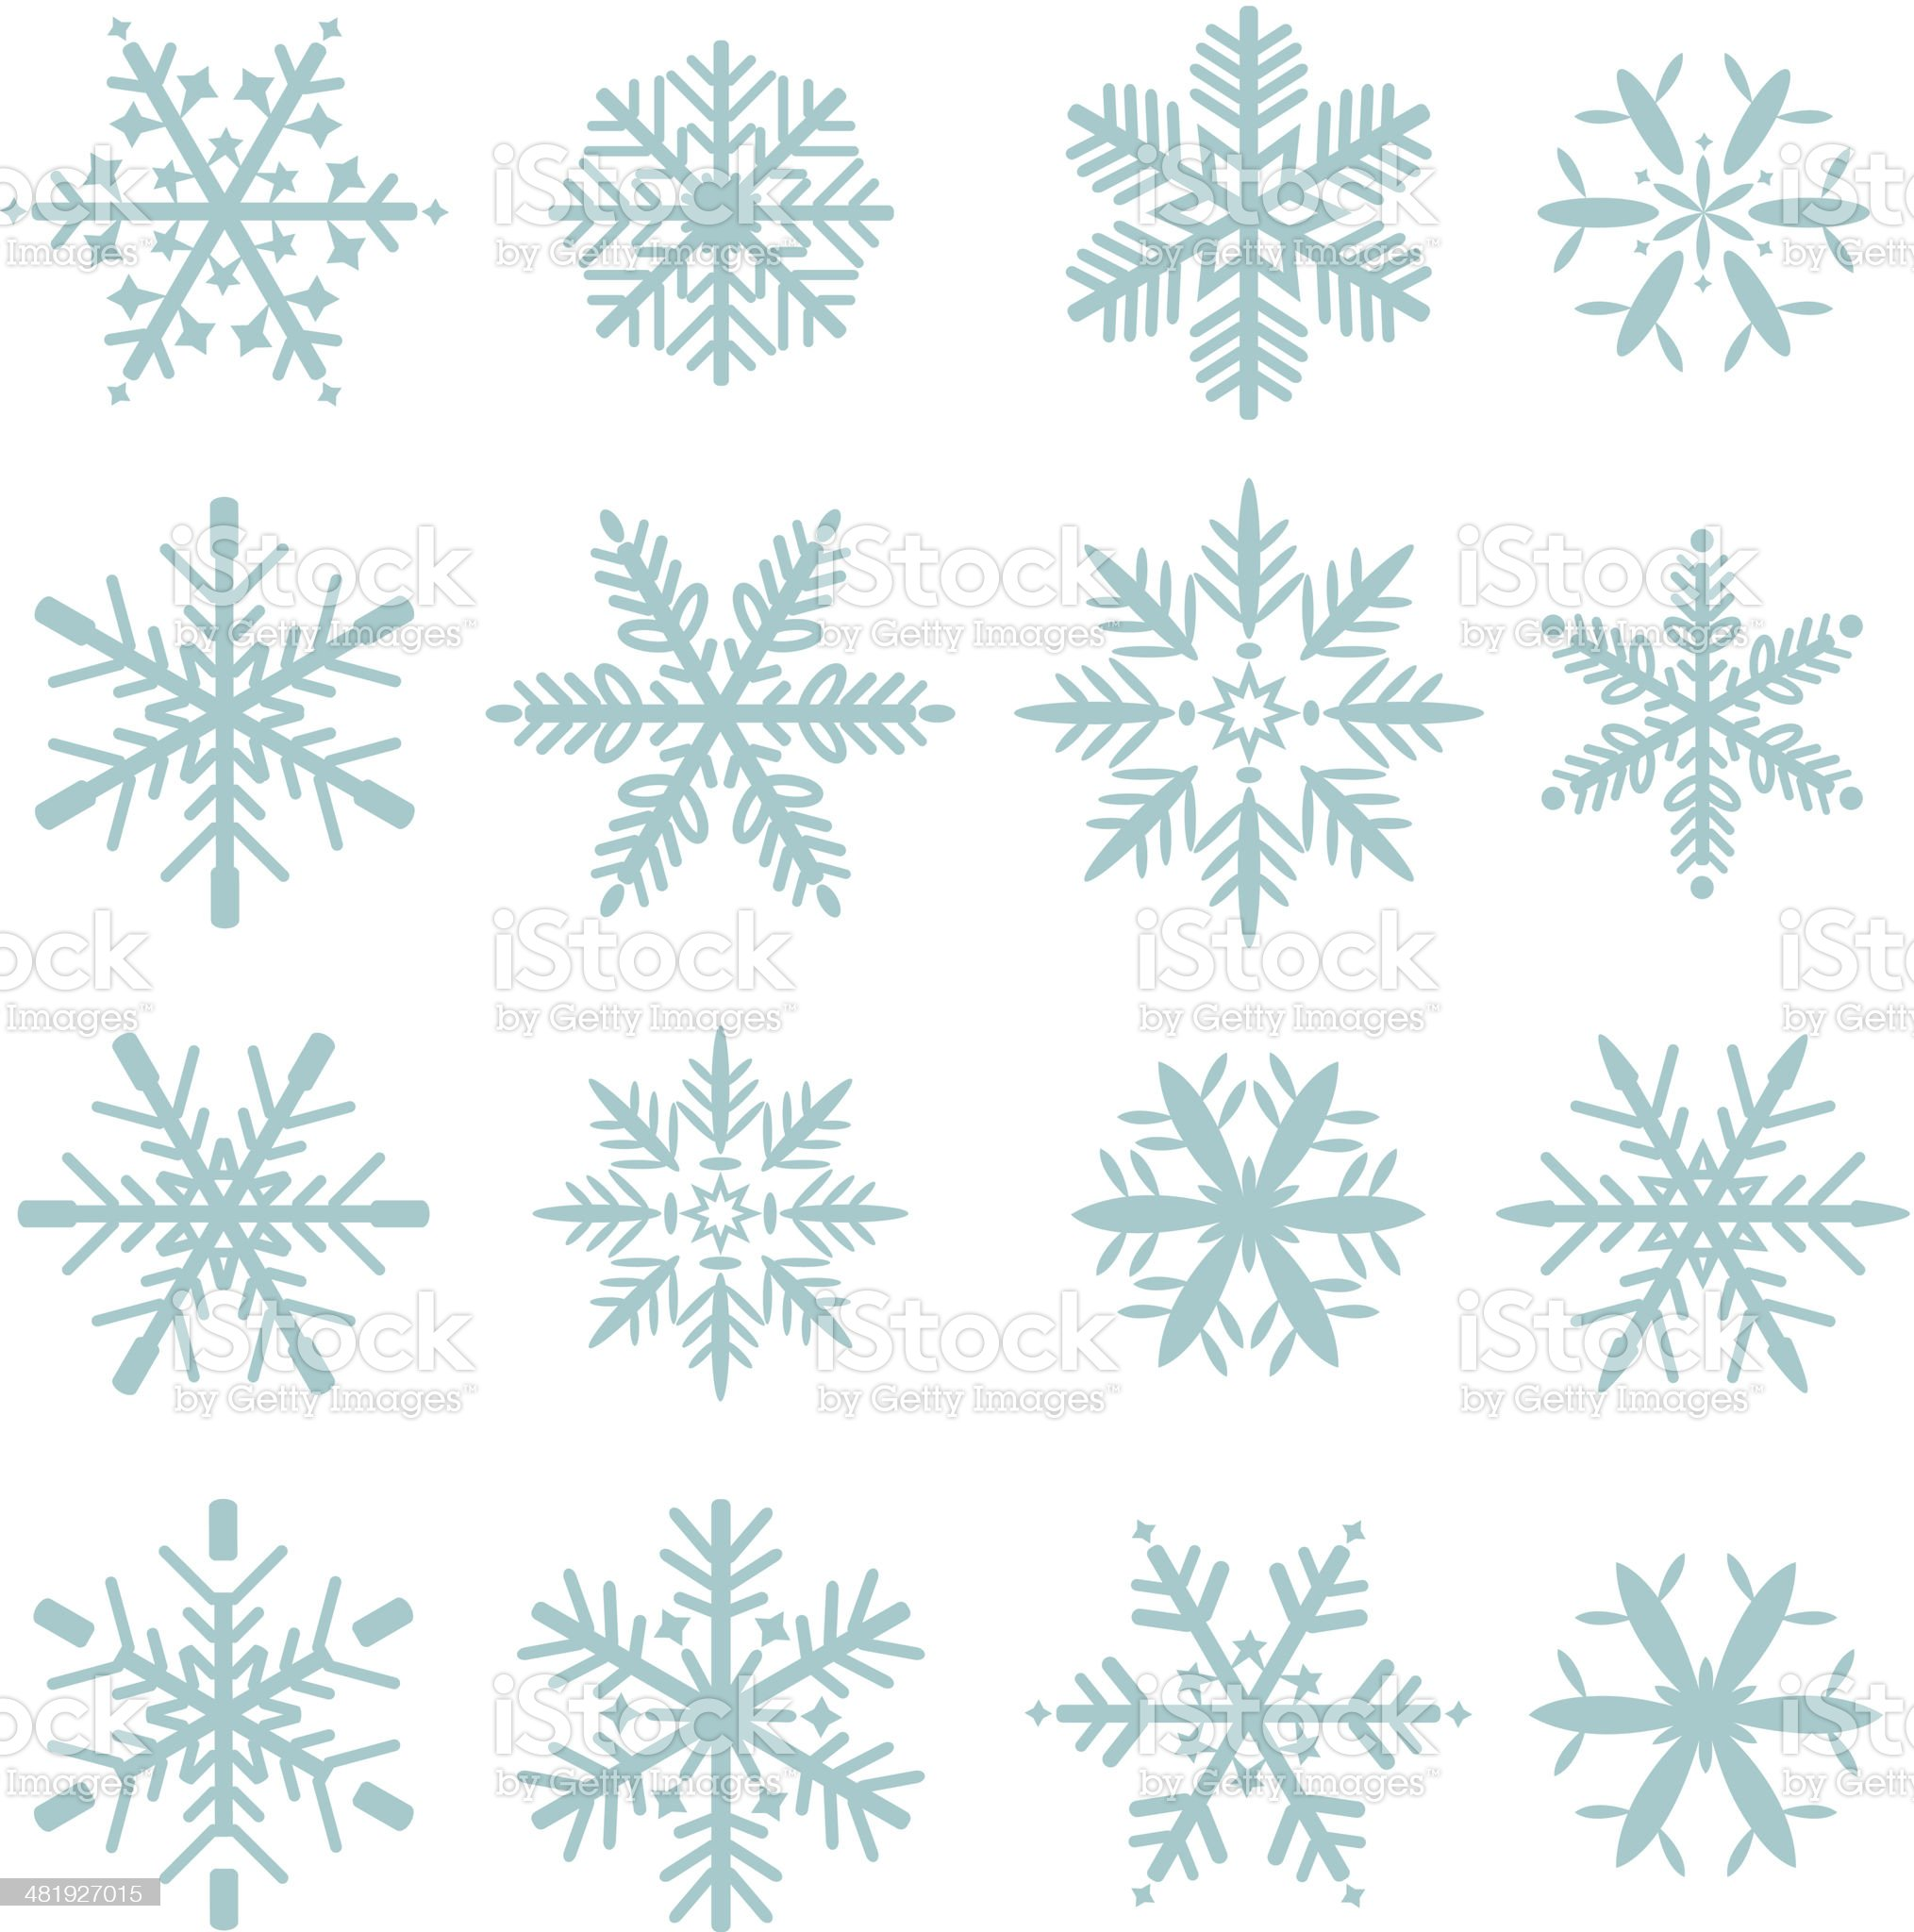 set of blue snowflakes icons royalty-free stock vector art